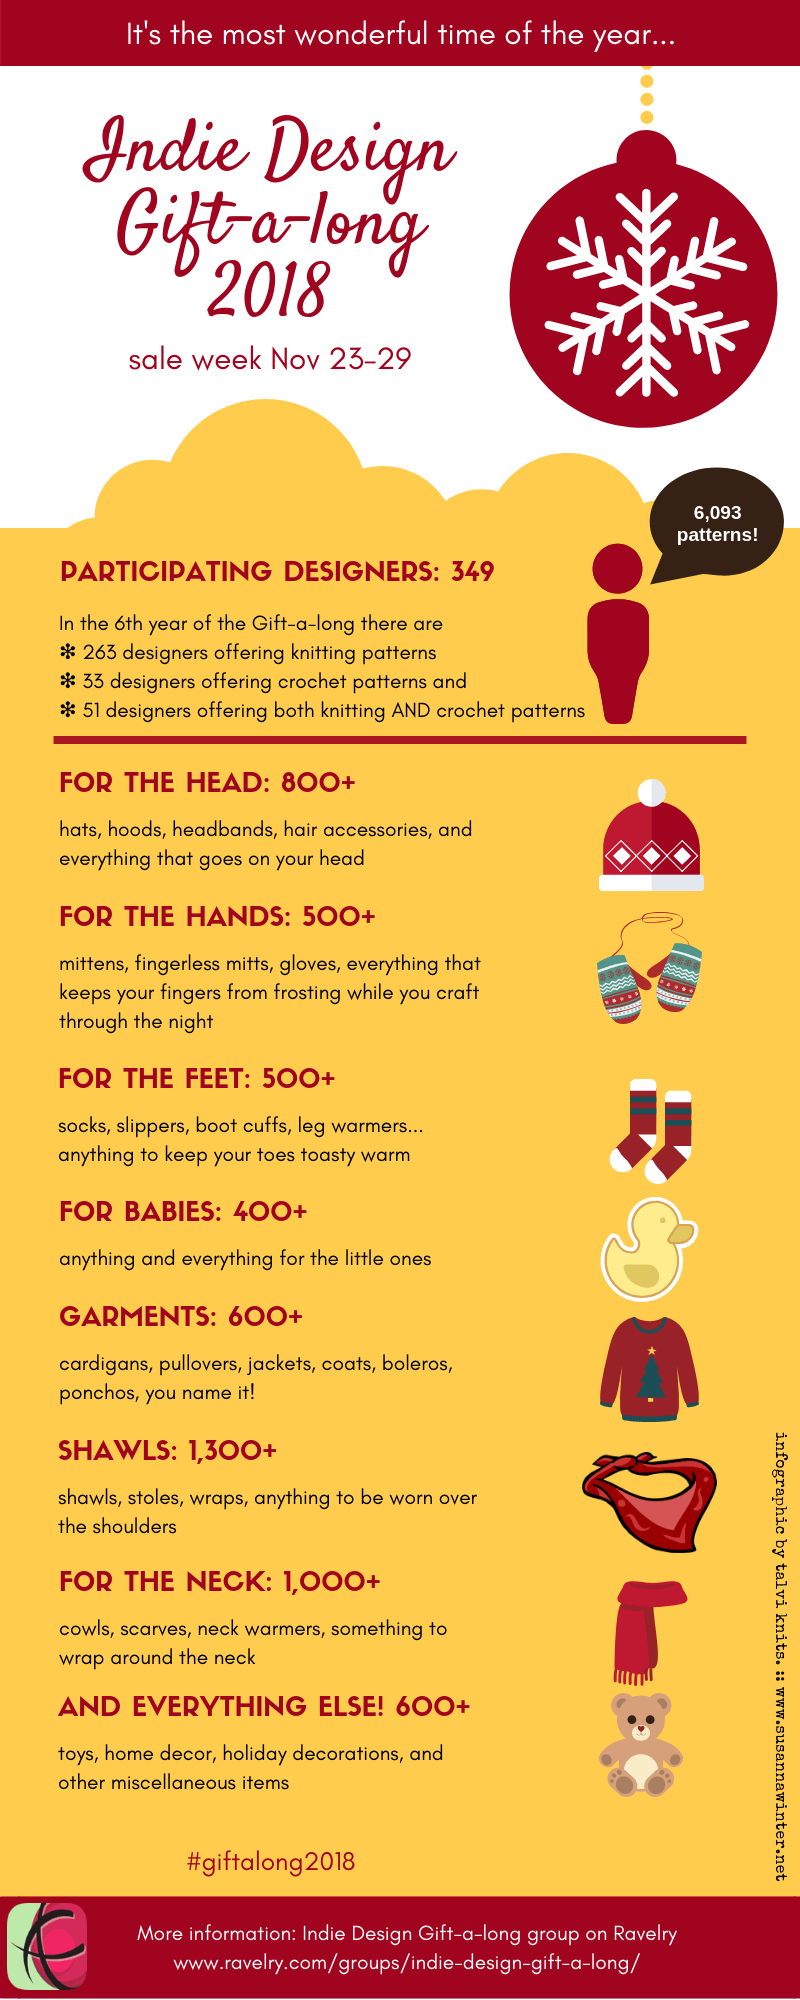 Infographic: Gift-a-long 2018 Sale Week